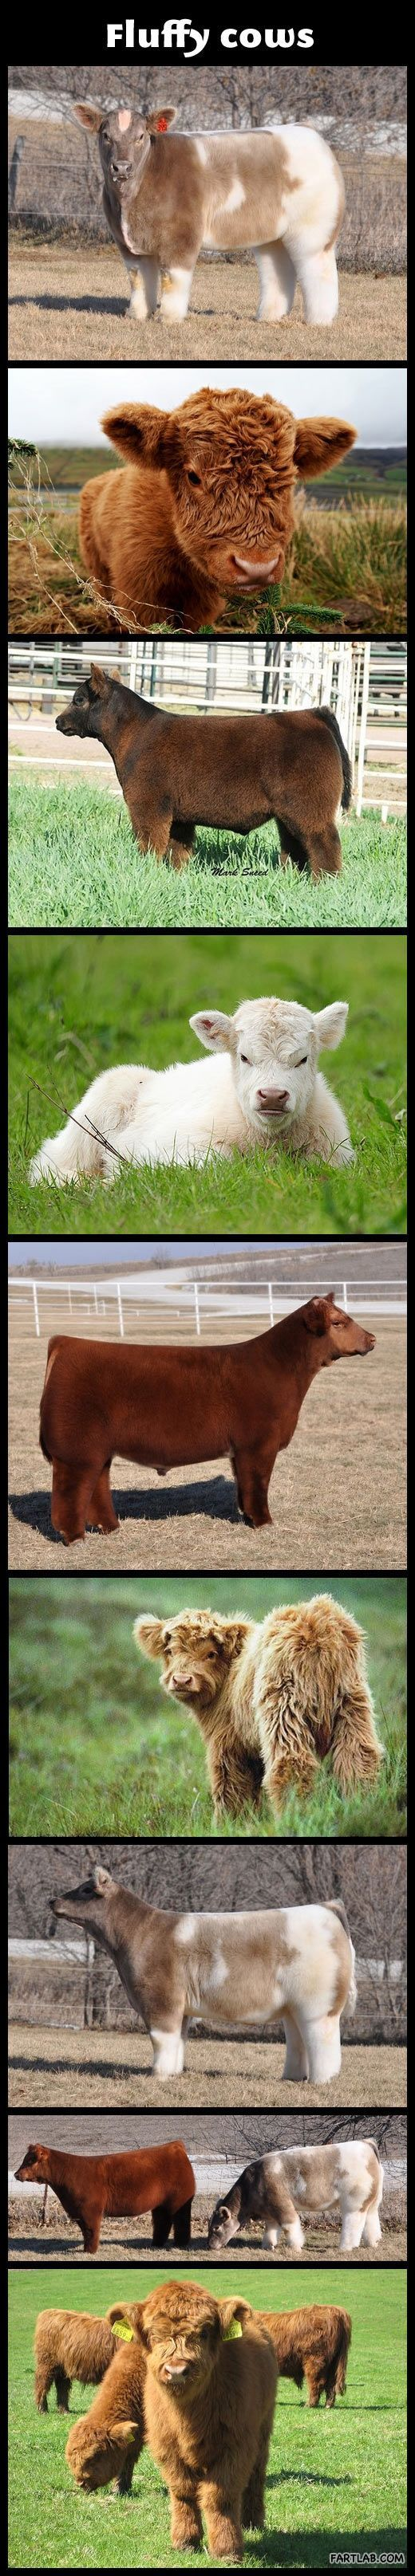 Let me introduce to you, fluffy cows!